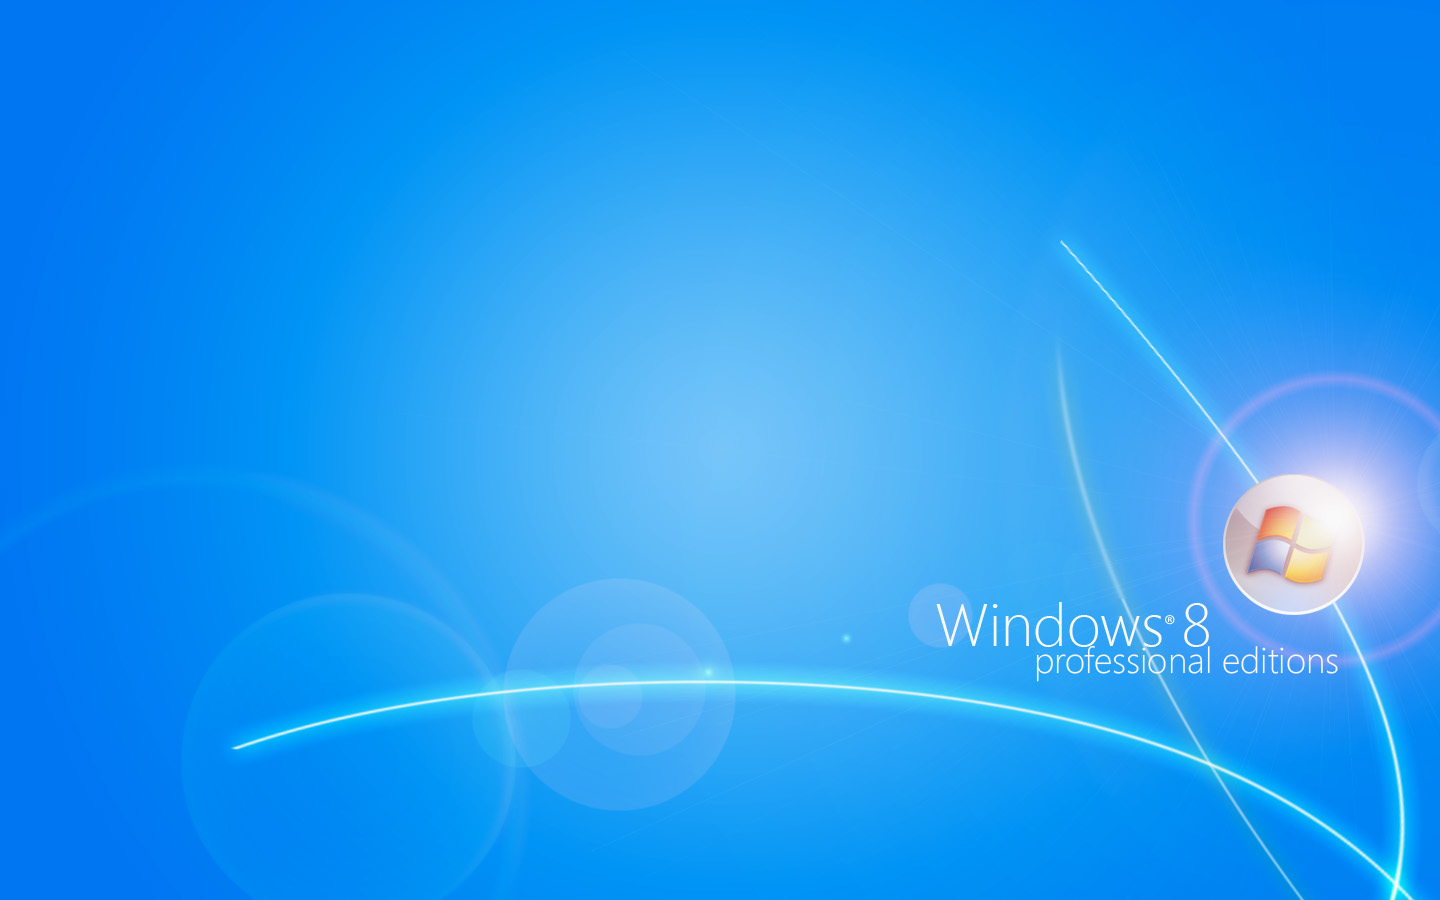 Wallpapers Windows 8 Wallpapers 1440x900